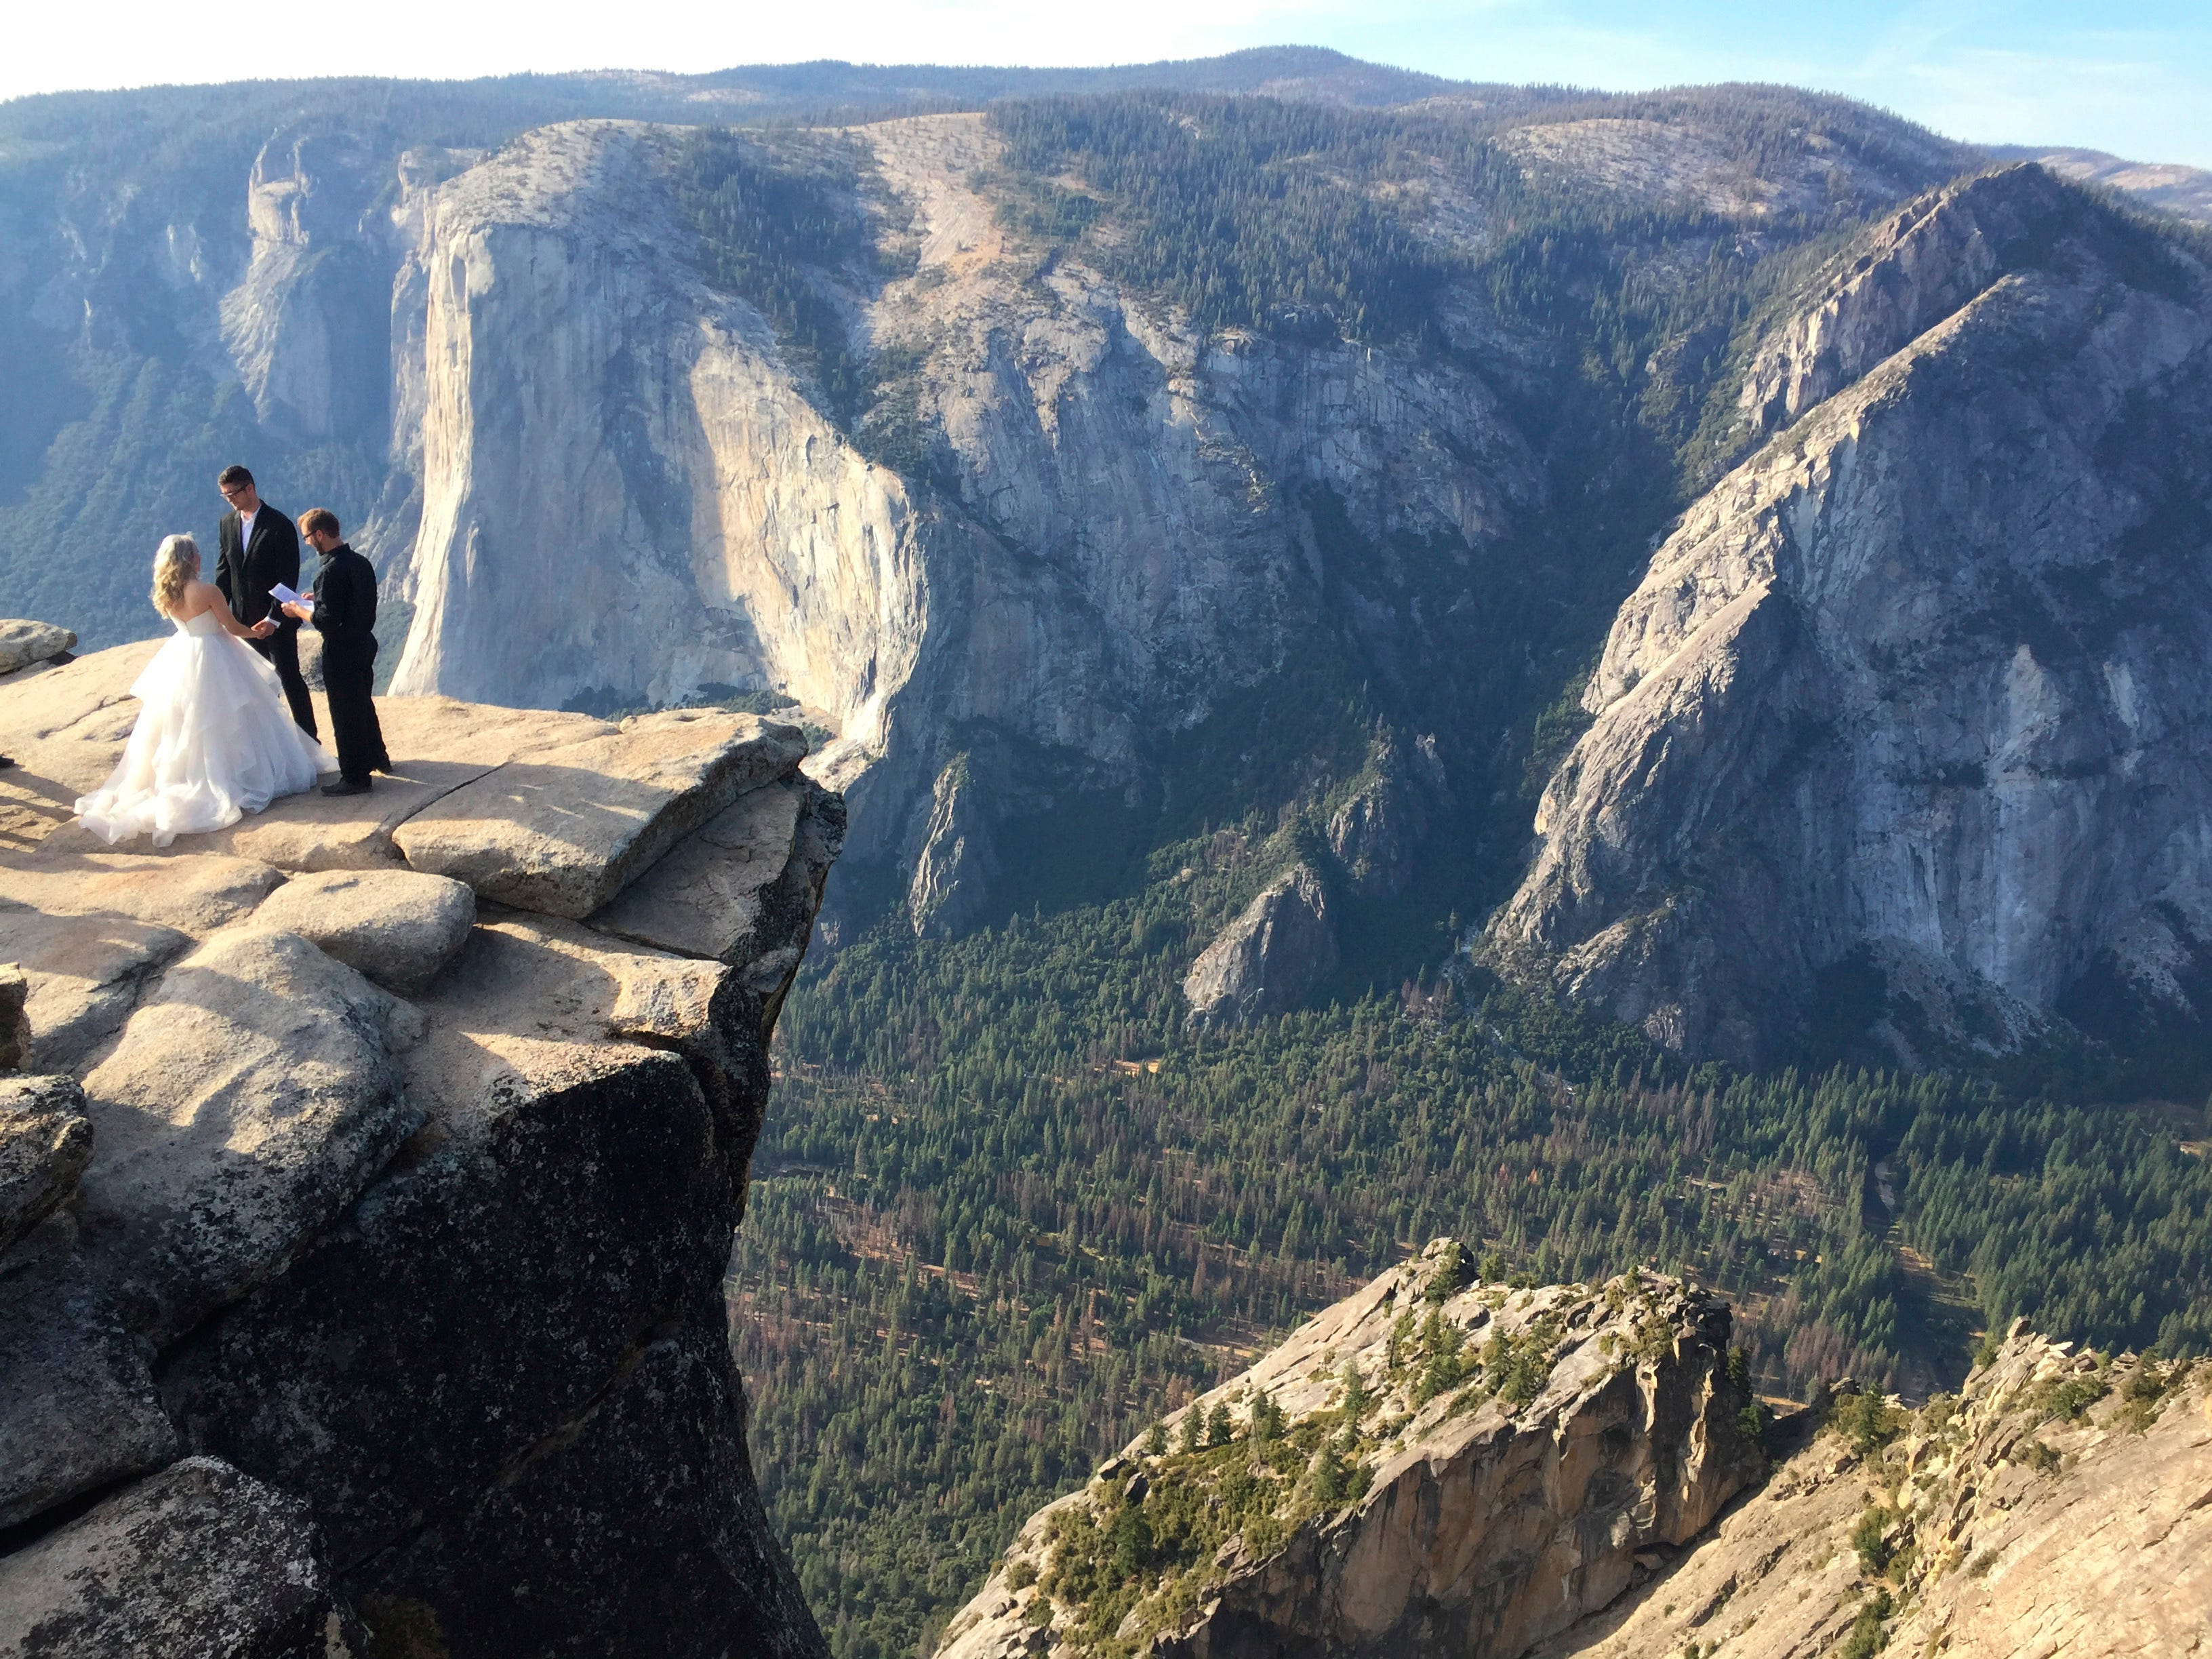 A couple wed at Taft Point in California's Yosemite National Park on Thursday, Sept. 27, 2018. The viewpoint overlooks Yosemite Valley, including El Capitan, a popular vertical ascent for rock climbers across the globe.